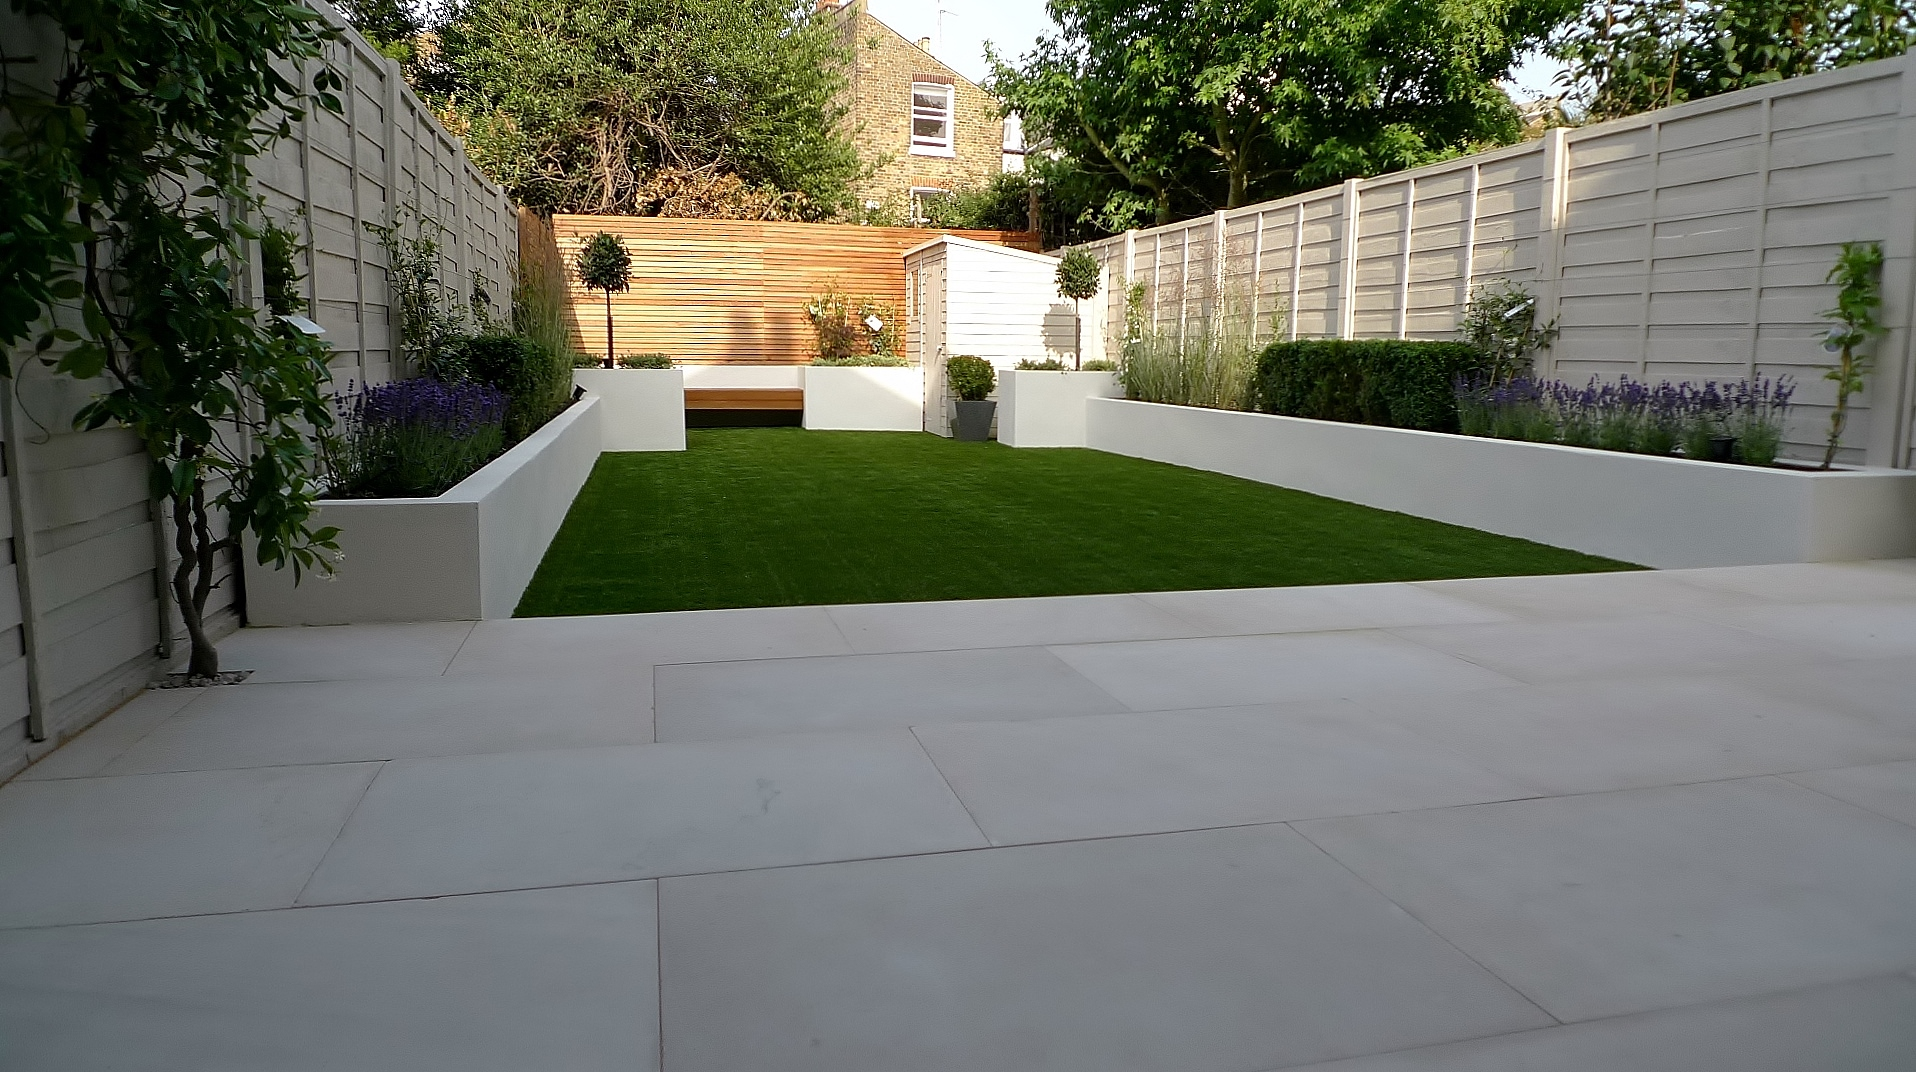 Anewgarden london garden blog for Garden ideas and designs photos